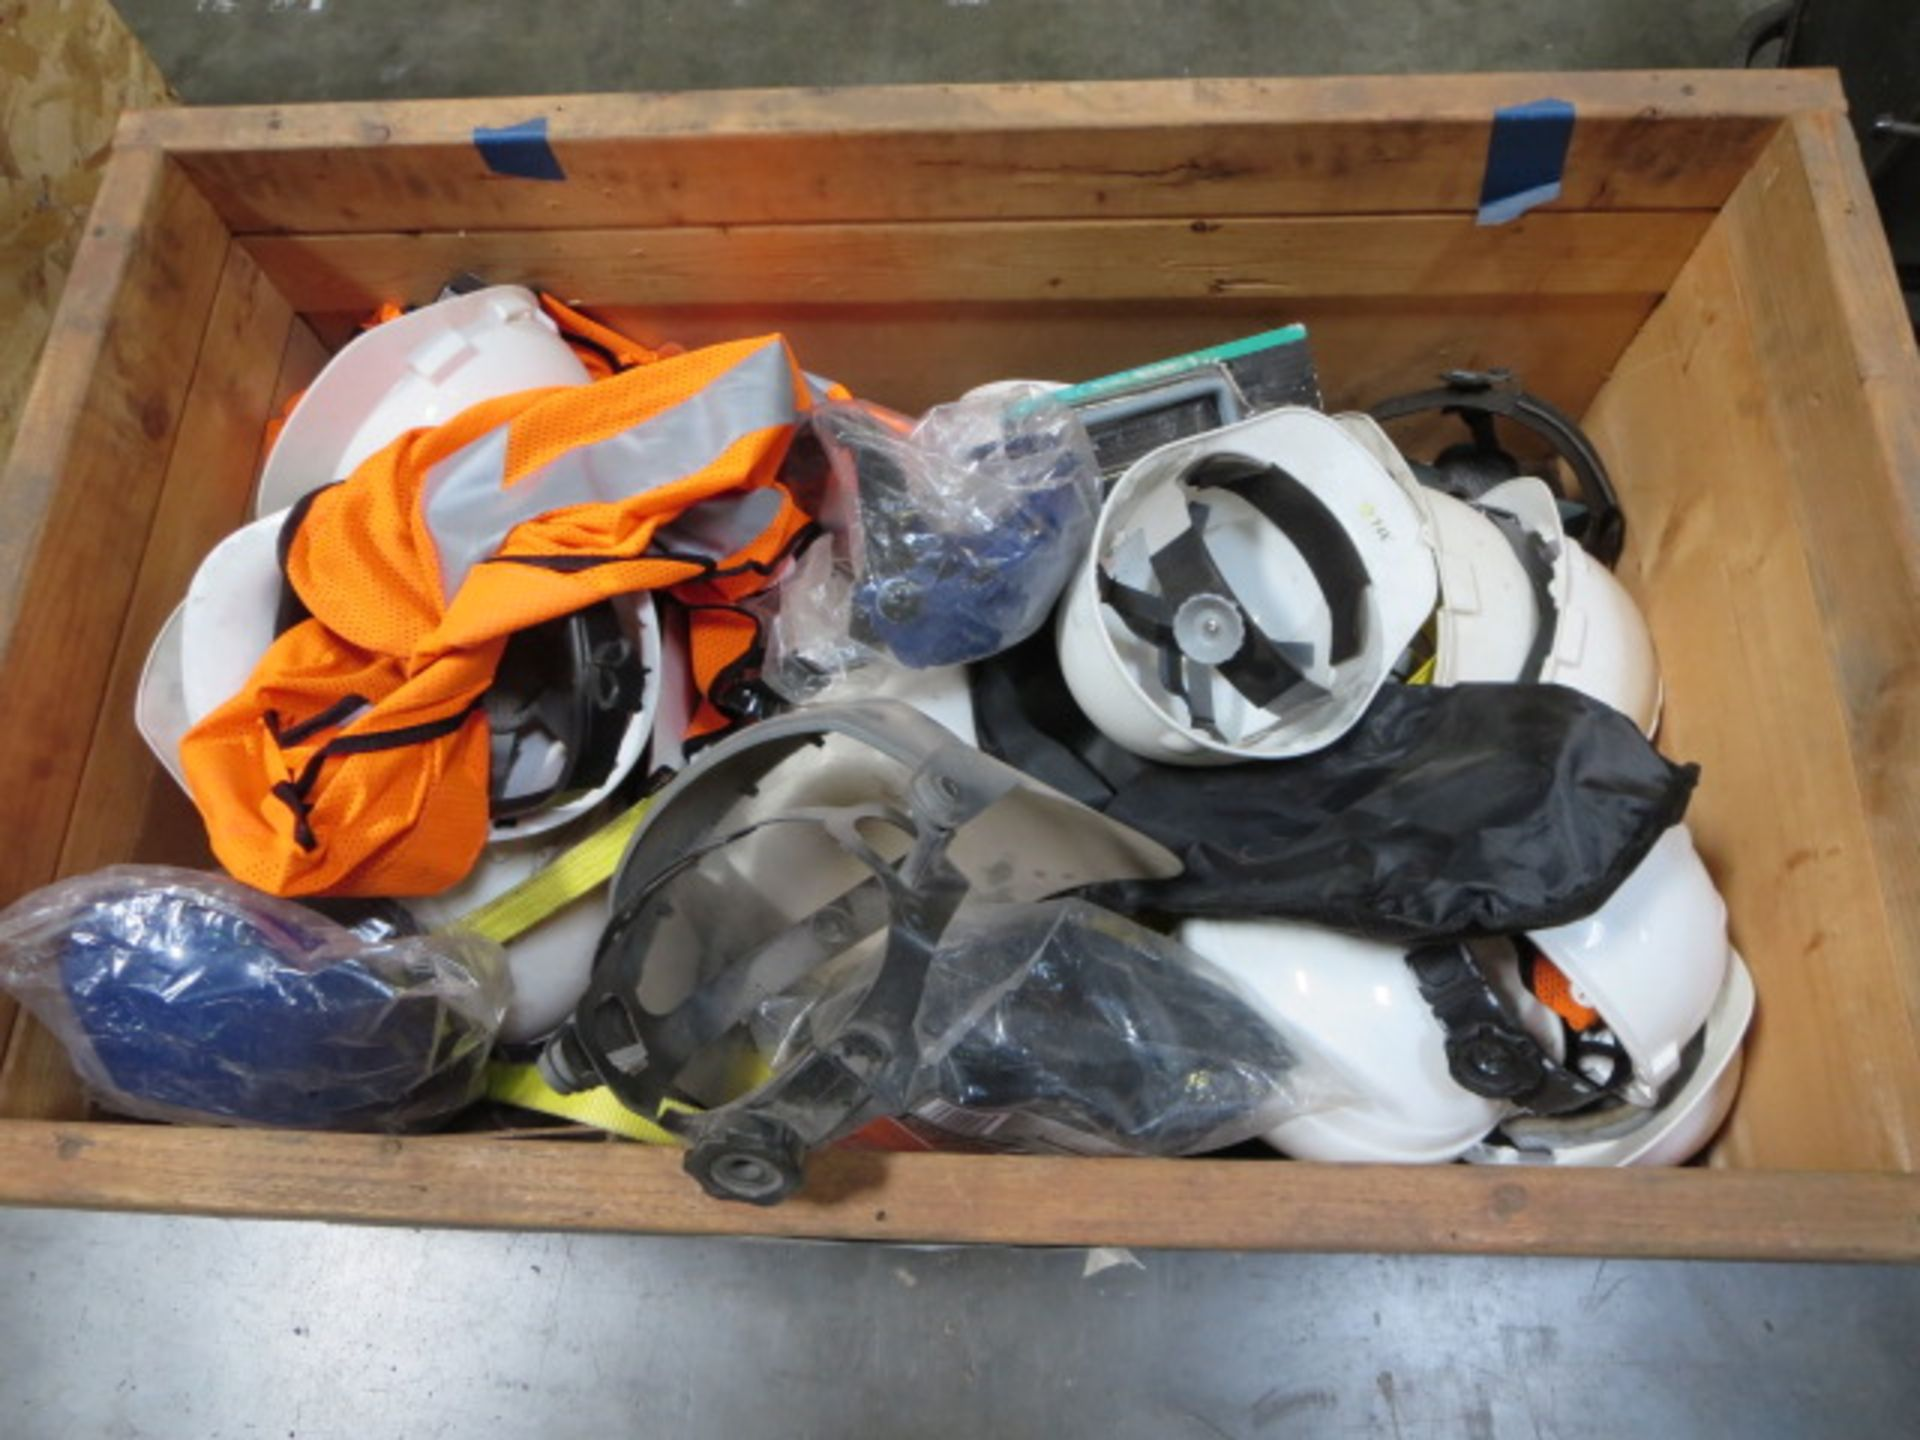 Lotto 317 - Lot of Safety Gear, Hi Vis Vests, Hard Hats, Harnesses, Contents of Crate